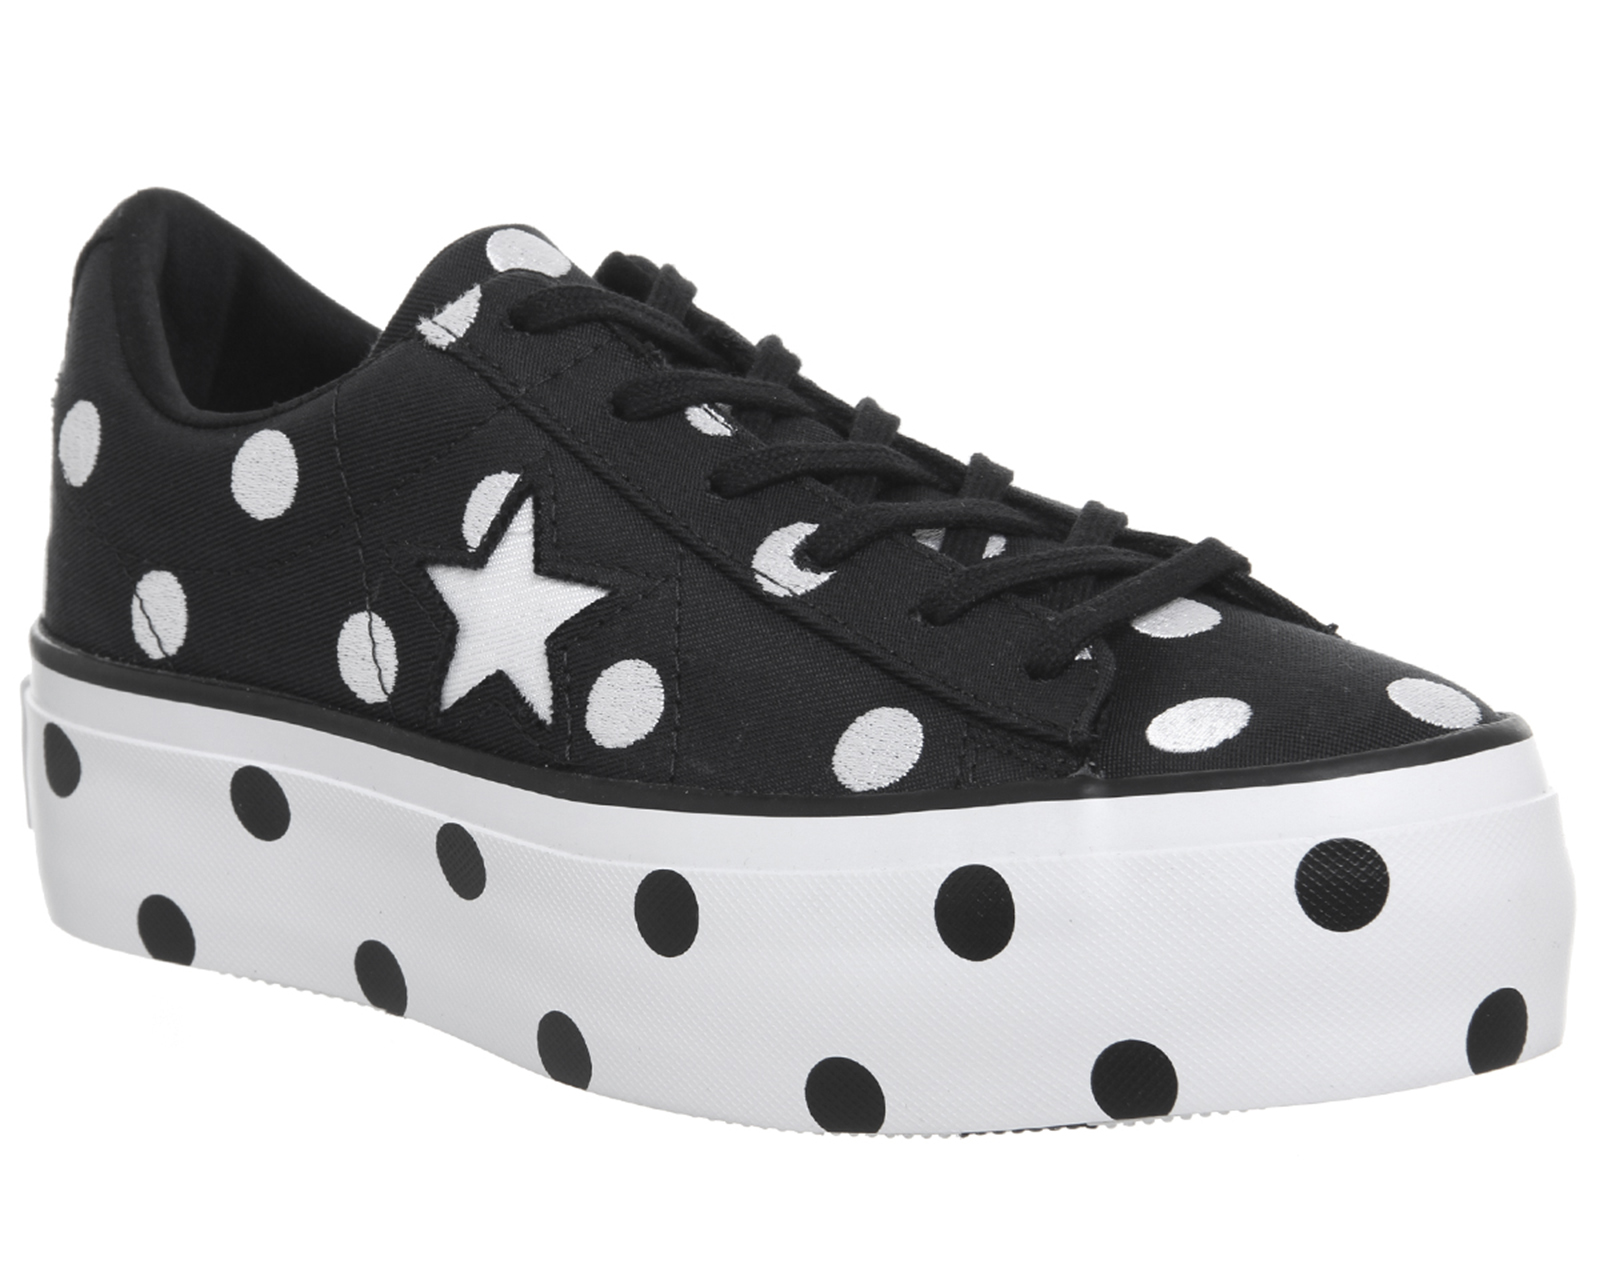 fc19ac95d9e3 Sentinel Thumbnail 1. Sentinel Womens Converse One Star Platforms Black  White ...